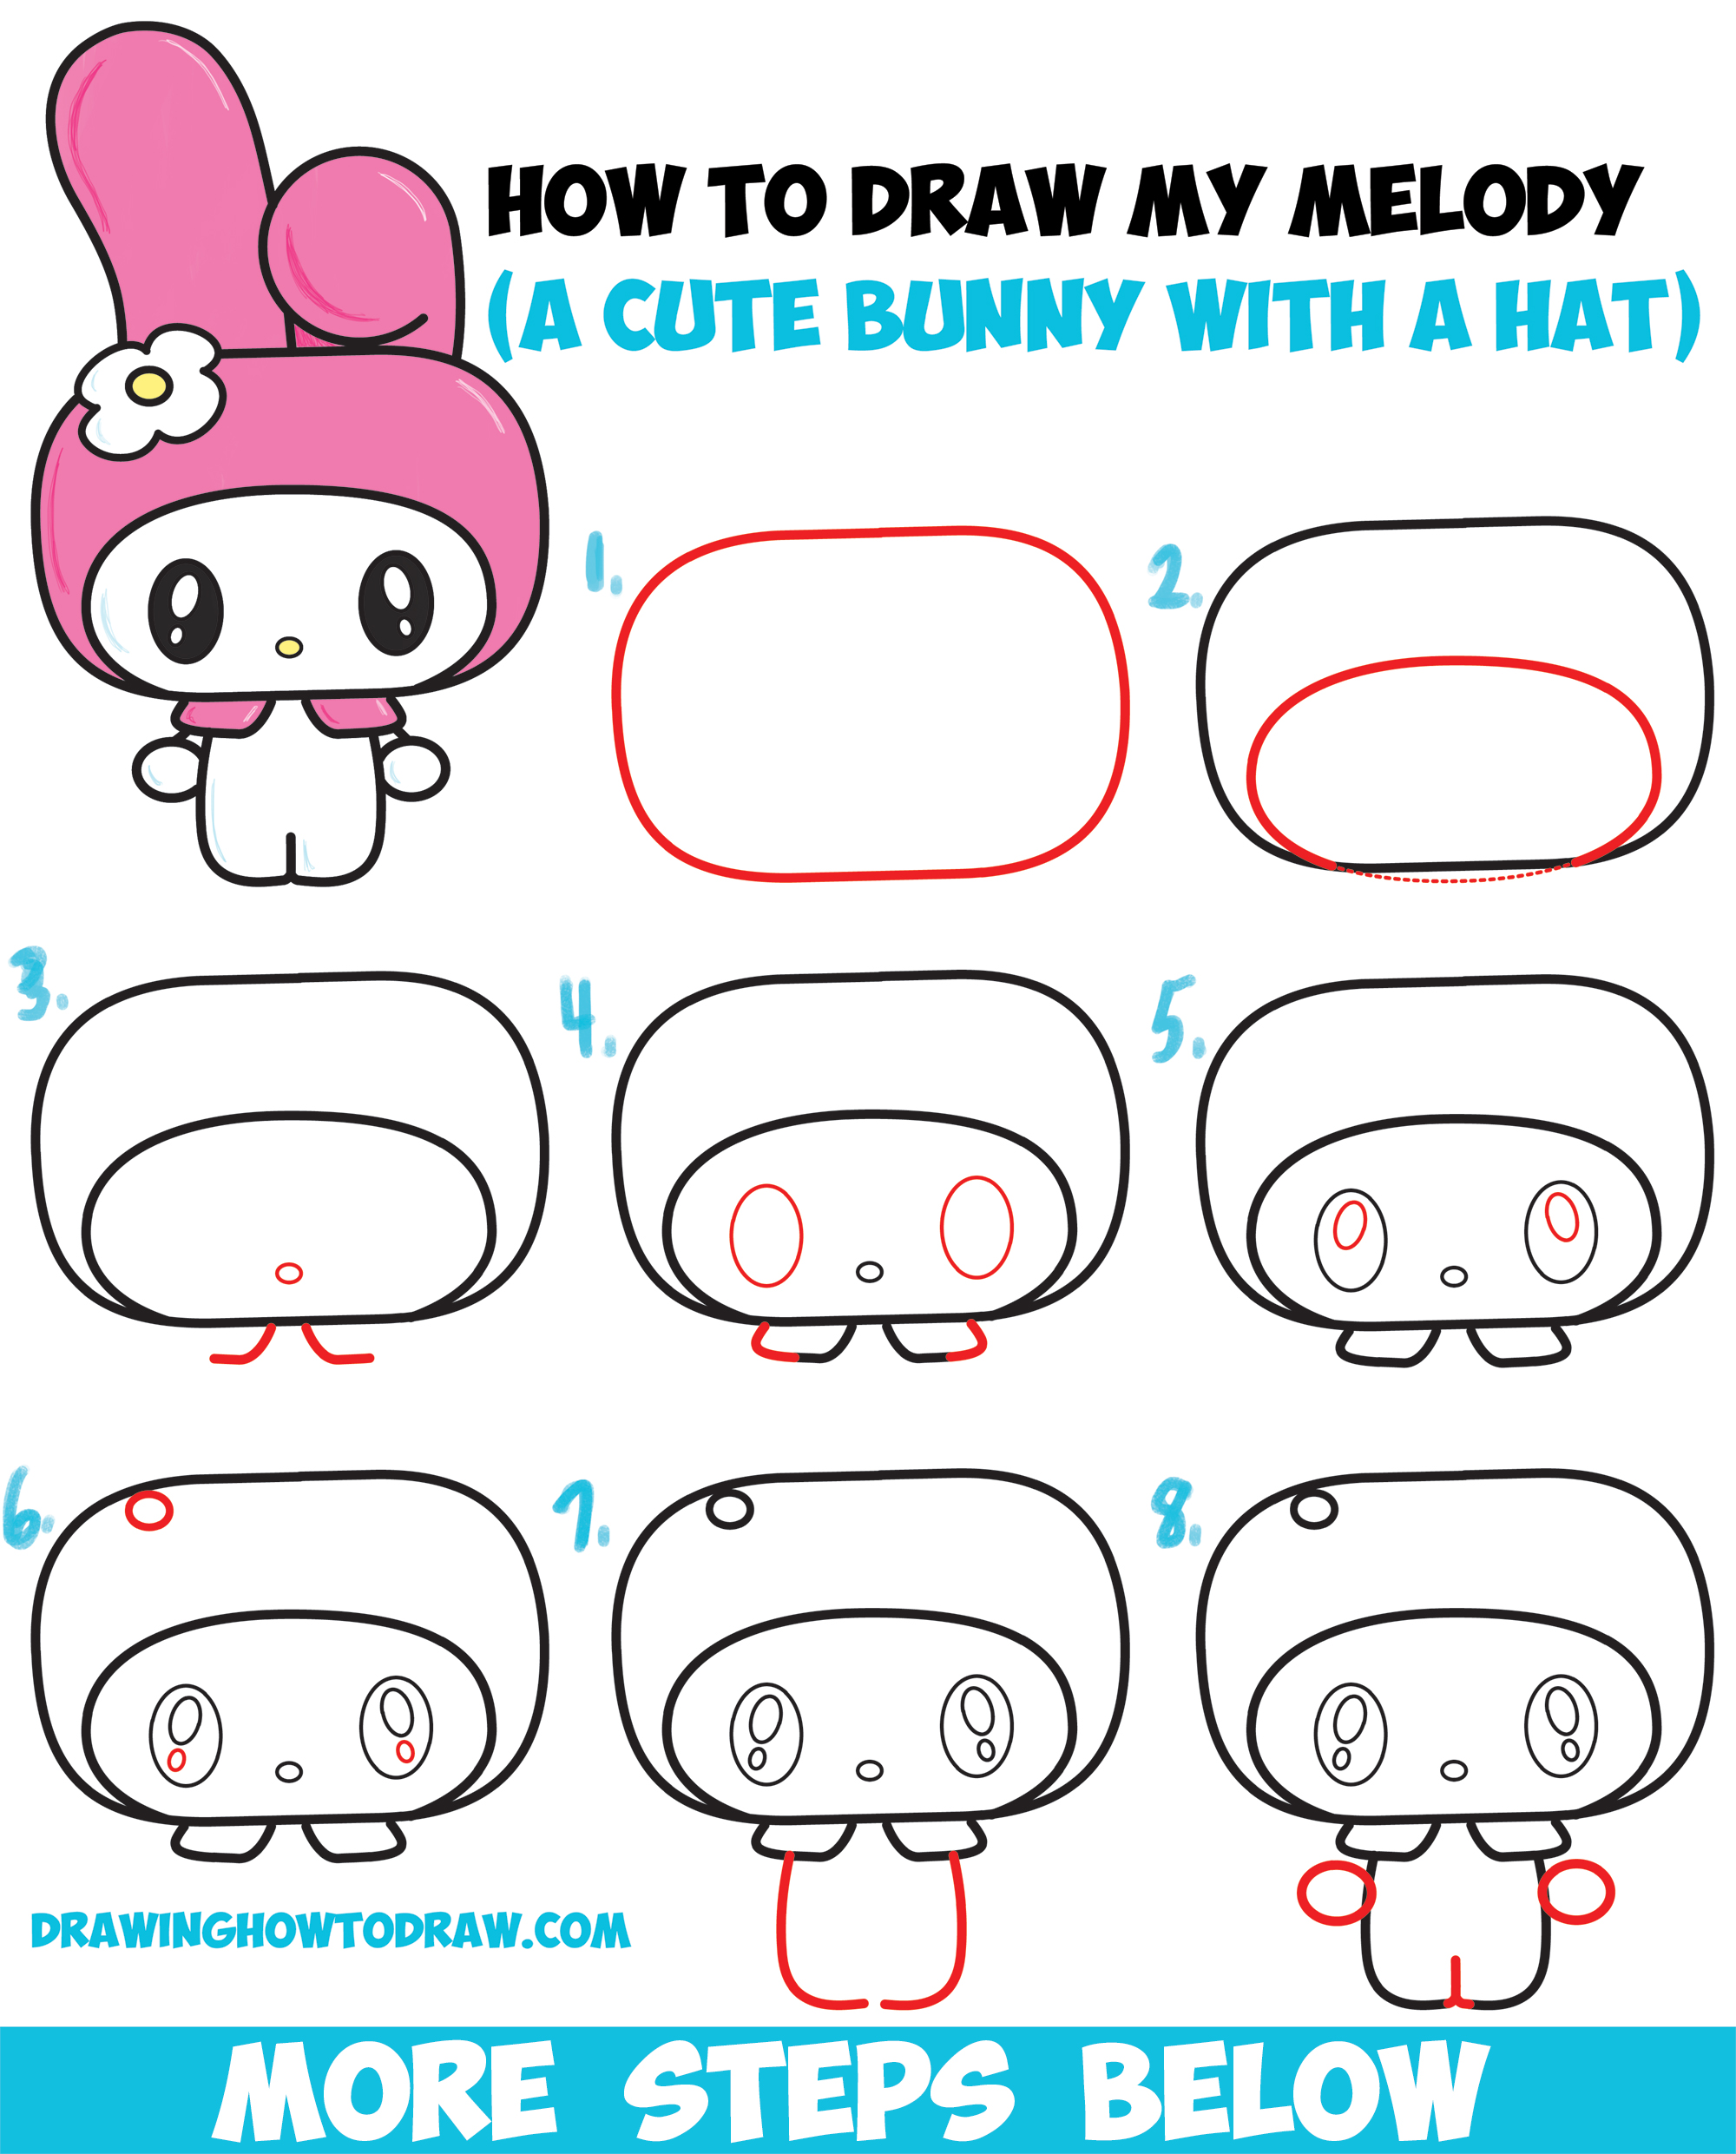 Learn How to Draw Kawaii / Chibi My Melody from Hello Kitty : A Cute Bunny with a Hood on - Easy Steps Drawing Lesson for Kids